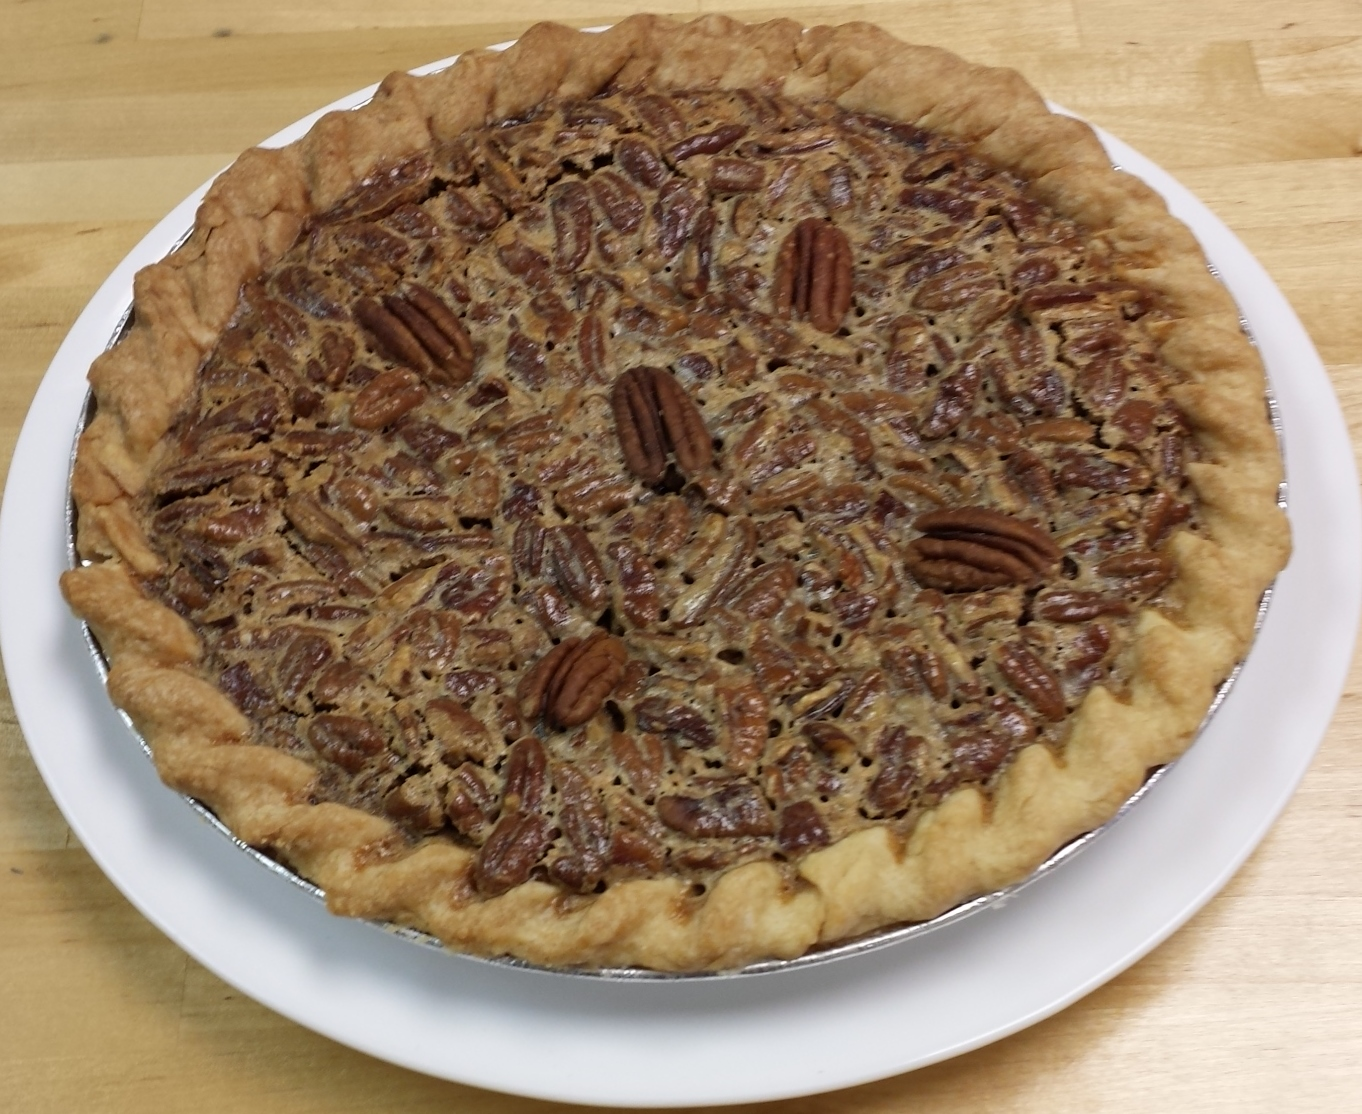 Pecan-Pie-new-jersey-pies-quiches